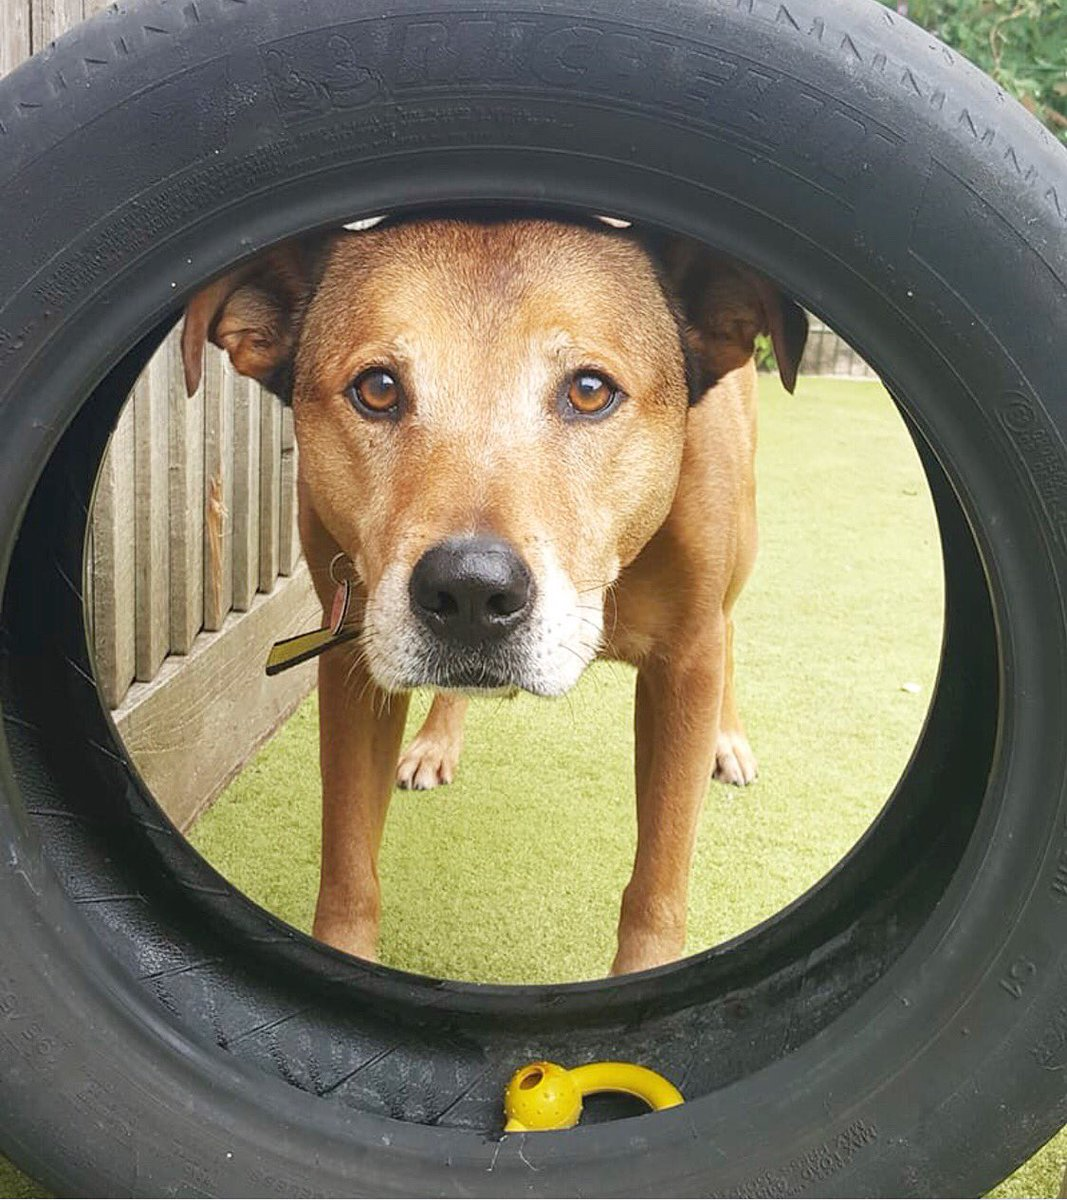 #MondayMood: Herbie willingly putting his head through a tyre but couldn't look more confused about it  <br>http://pic.twitter.com/uvyu8IV63x